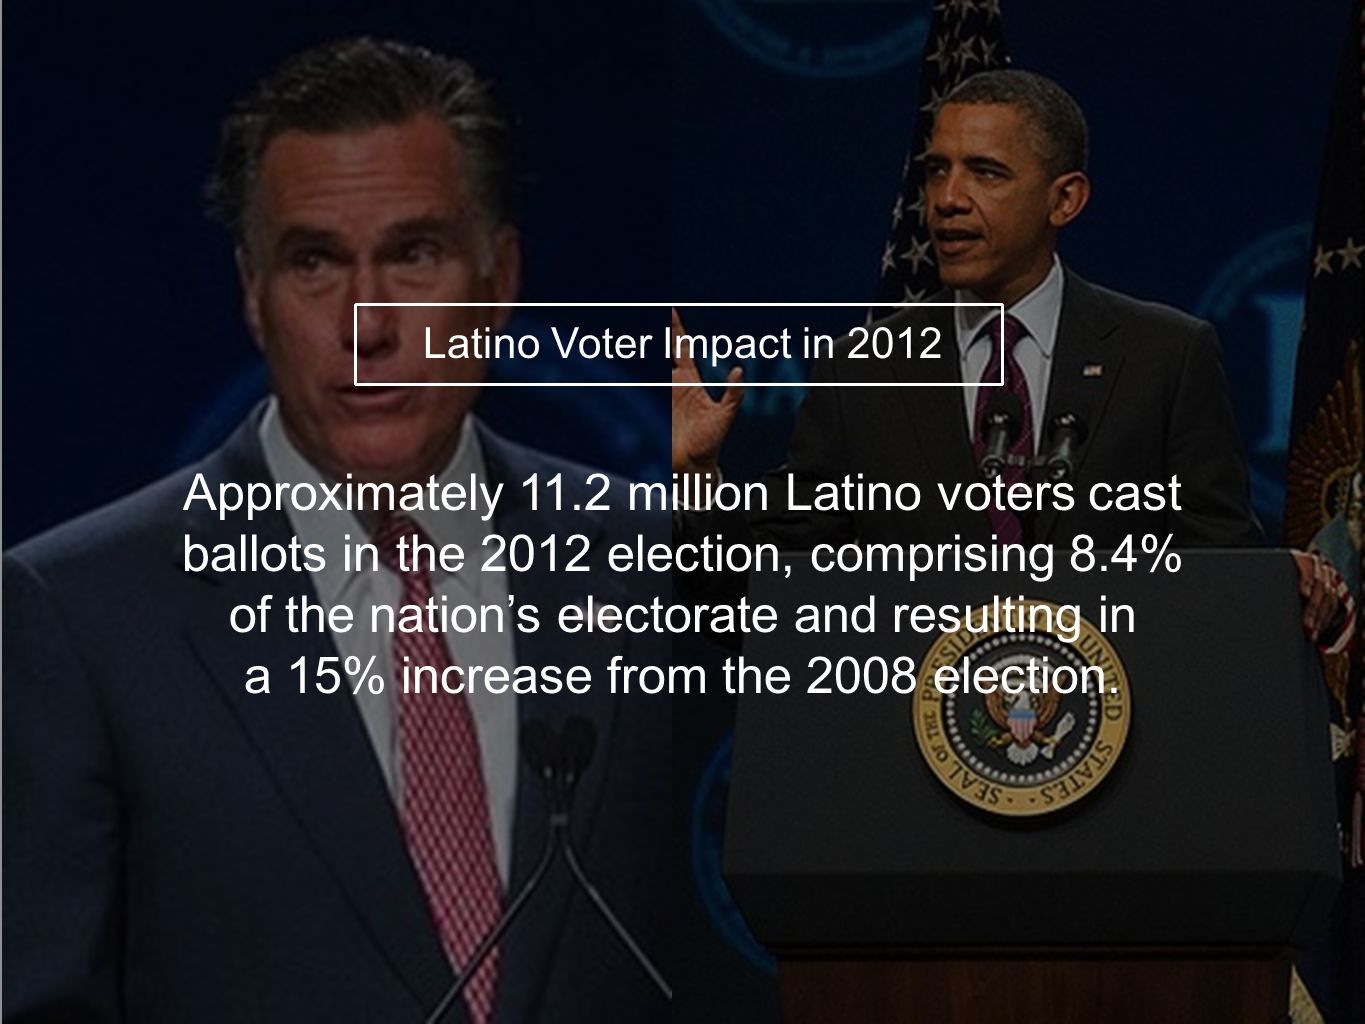 Latino Voter Impact in 2012 Approximately 11.2 million Latino voters cast ballots in the 2012 election, comprising 8.4% of the nation's electorate and